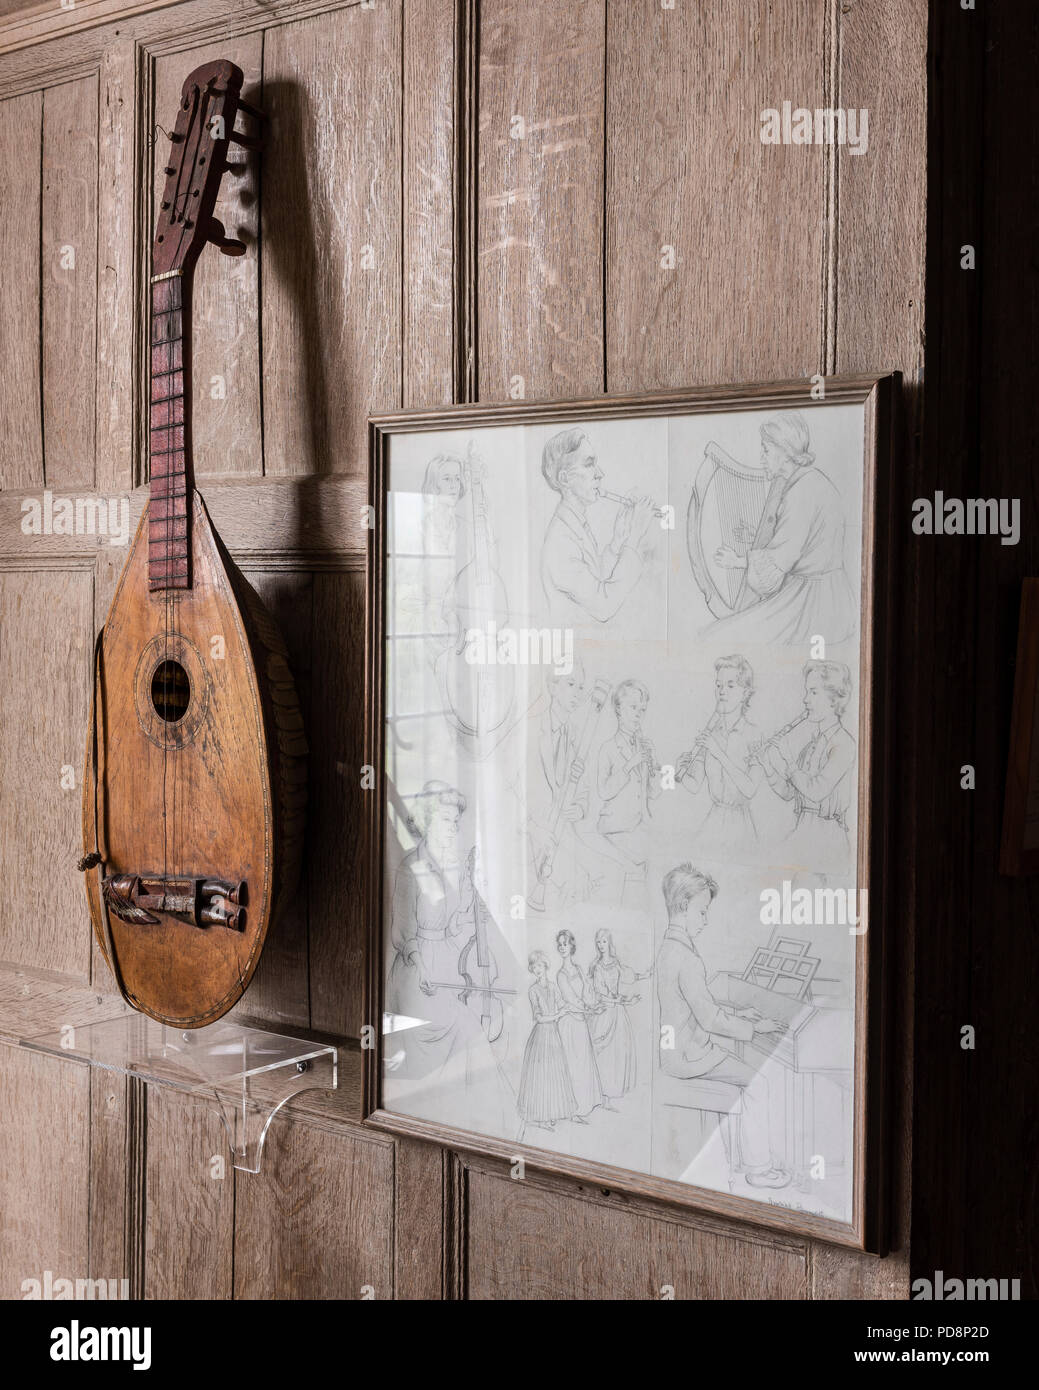 Stringed instrument and framed artwork of musicians playing instruments - Stock Image